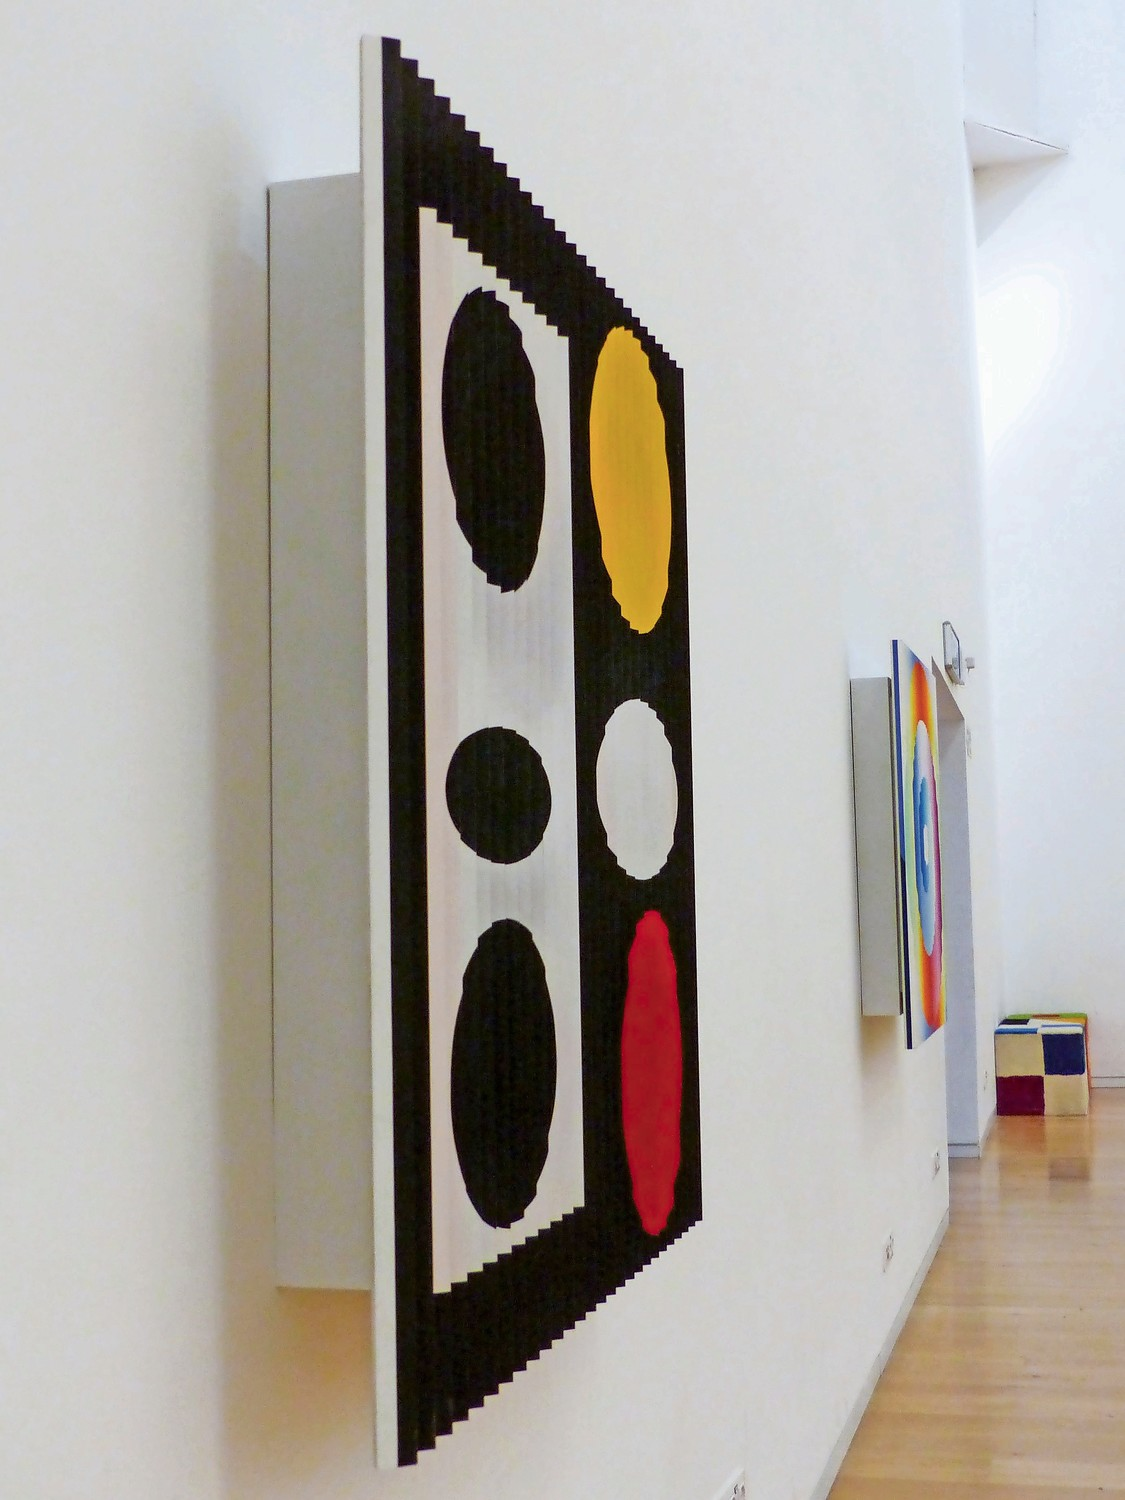 Yaacov Agam is as well known outside of Israel as he is in, and the Agam Museum in Rishon LeZion is a must-stop for those who would love to see his abstract pieces- some of them interactive- up close.